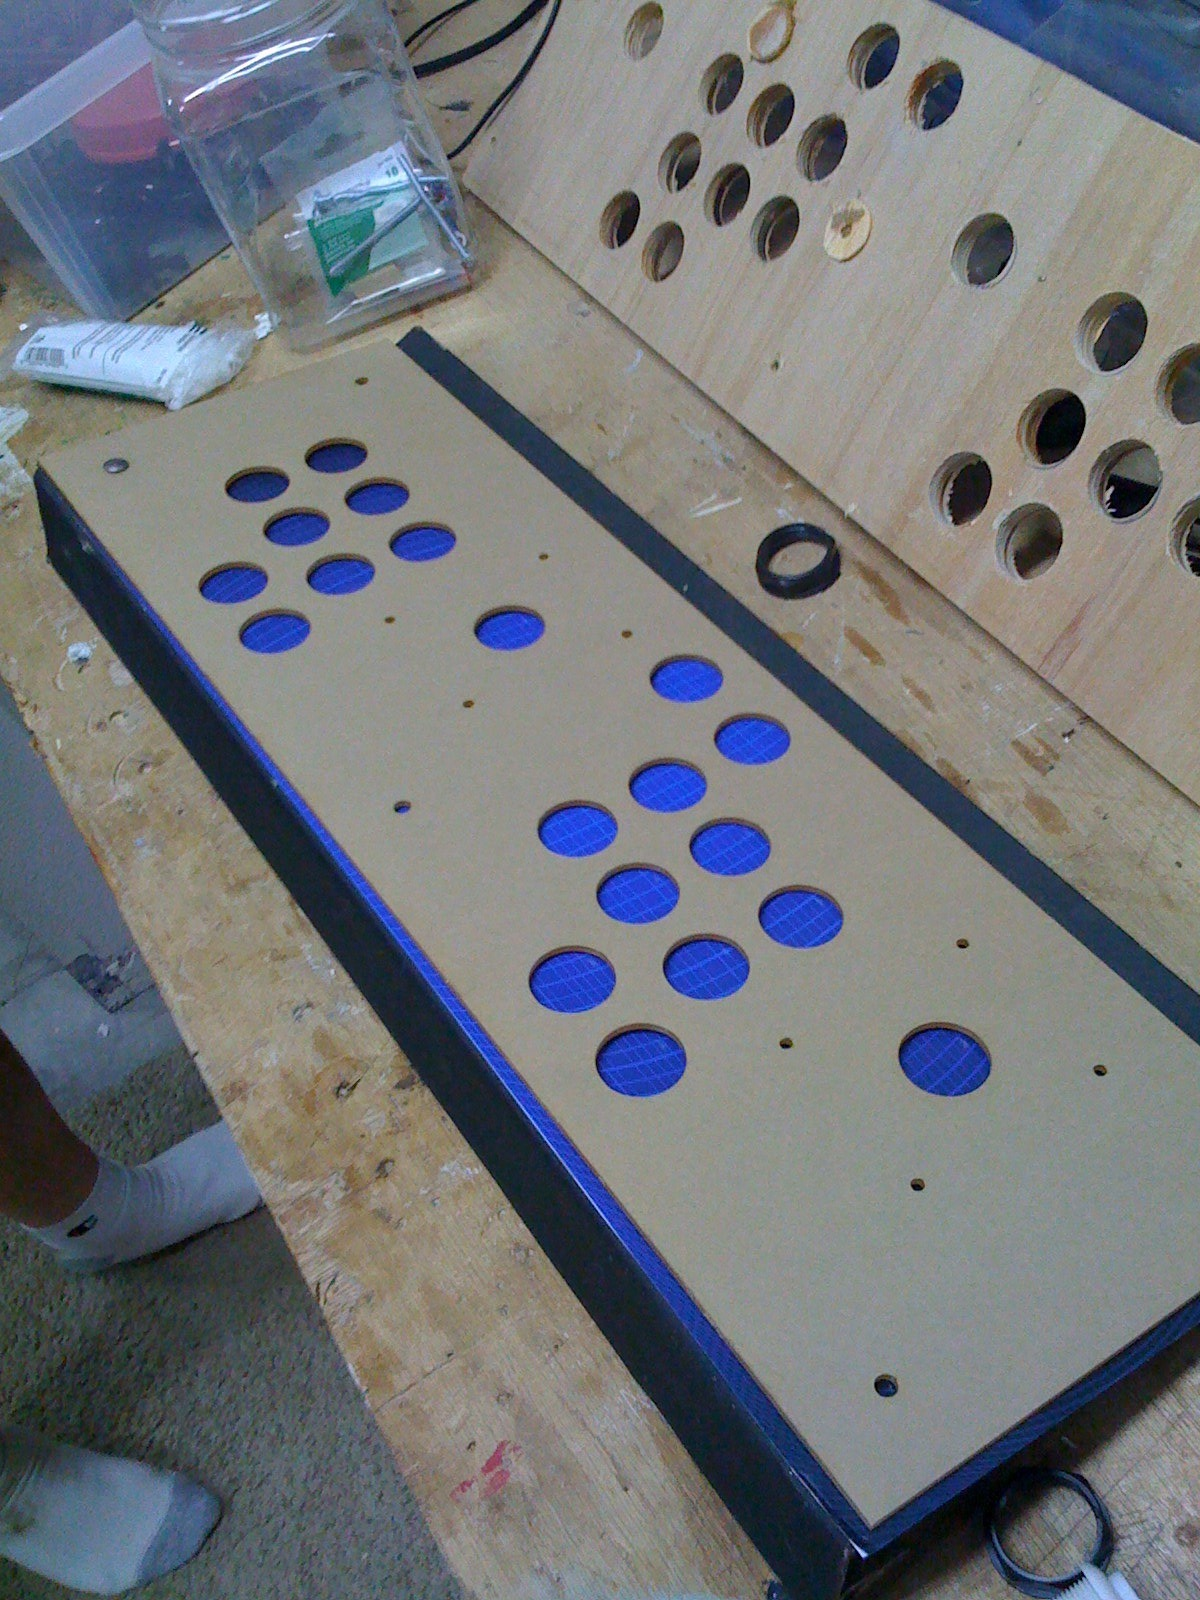 Building your own Arcade Cabinet for Geeks - Part 3 - Control Panel